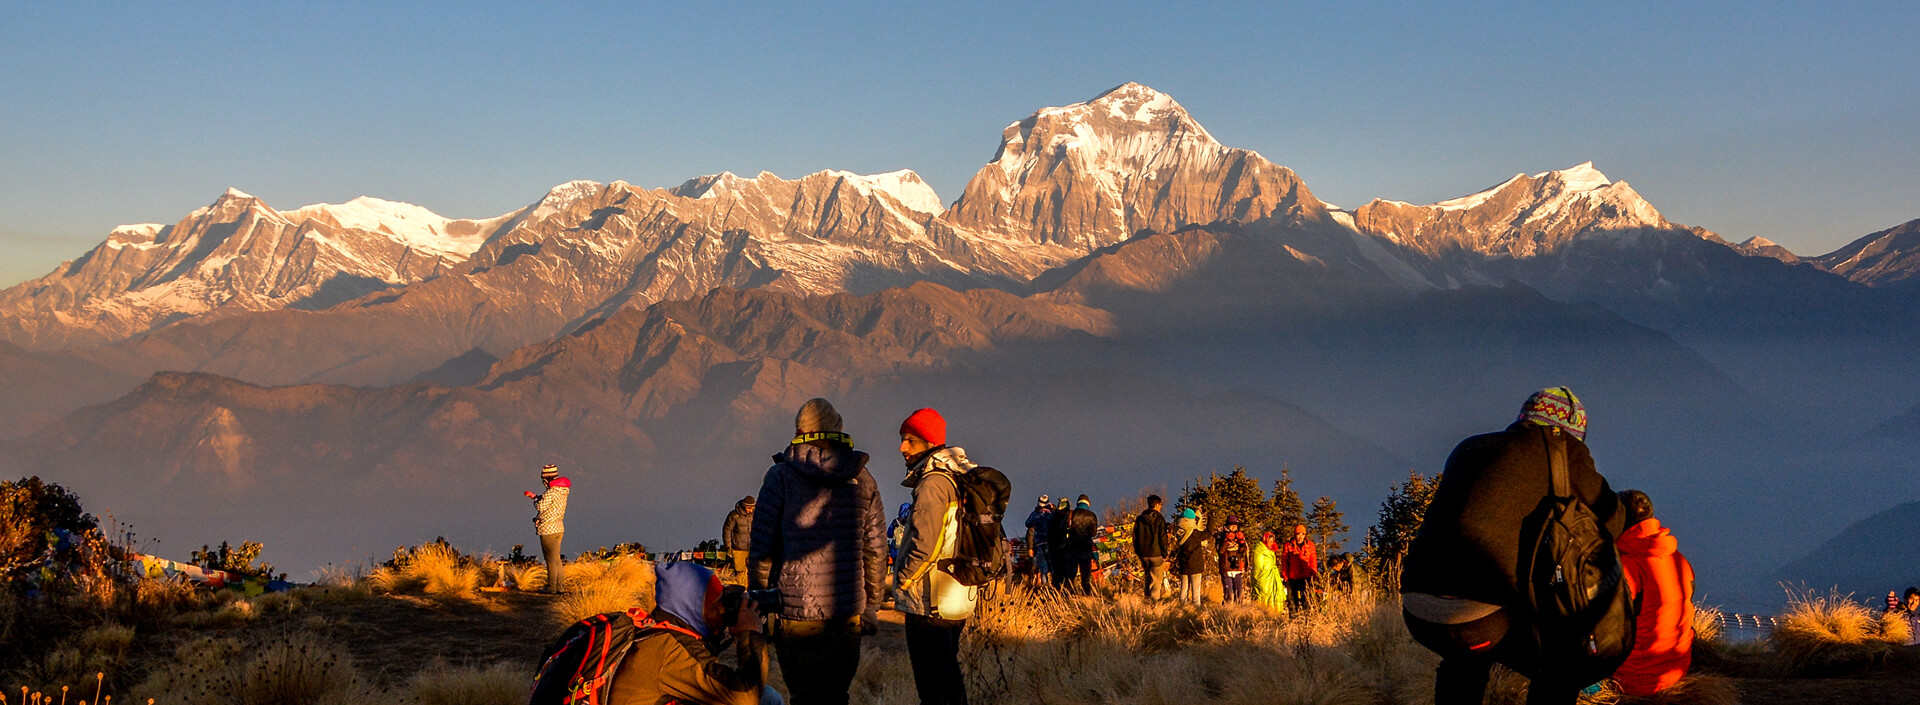 Nepal wiped out quarantine rule for International travelers